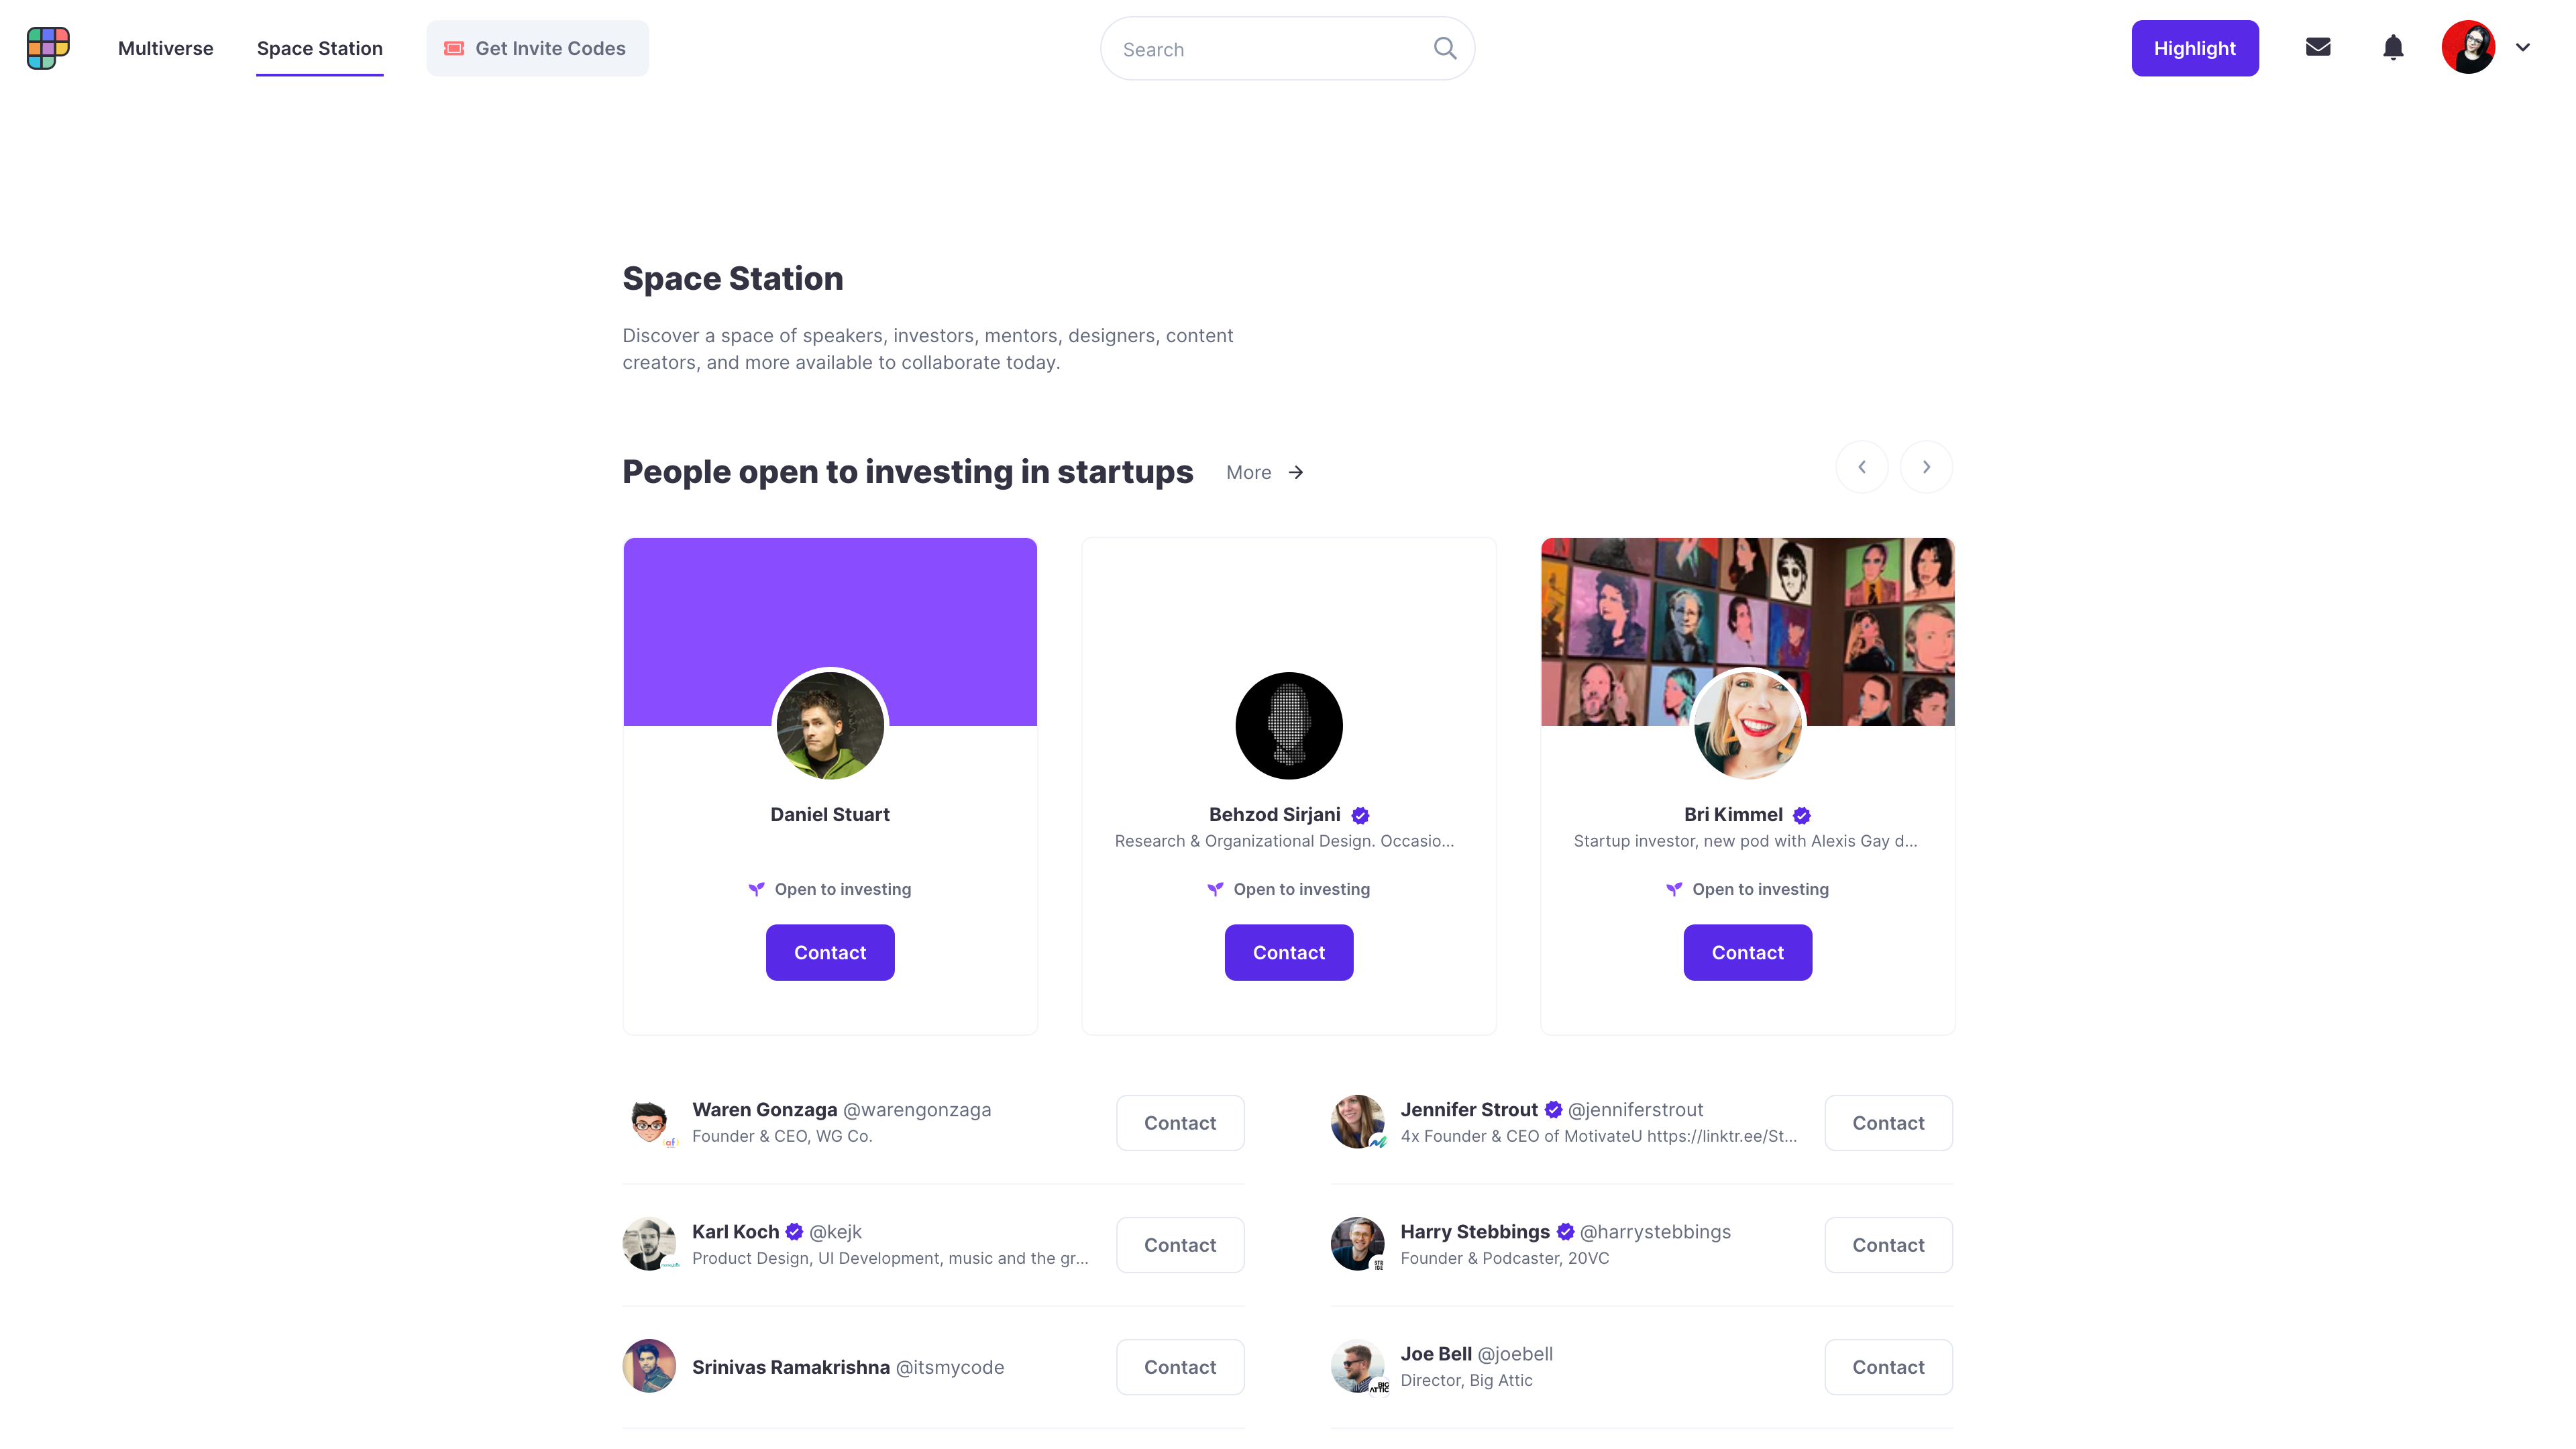 """A screenshot of the Polywork spacestation, which shows people available for collaboration. The top headline reads """"People open to investing in startups""""."""